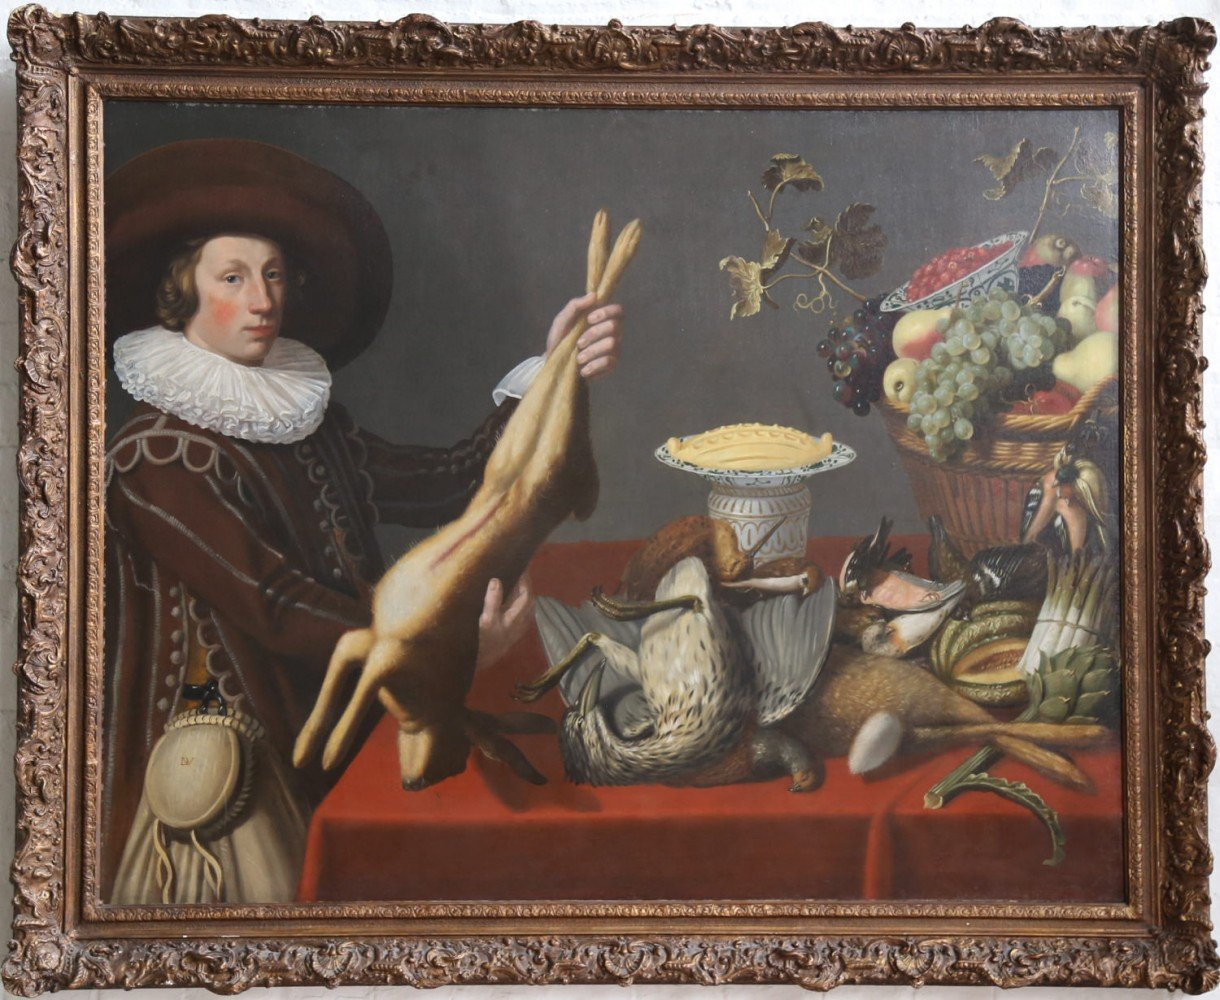 A Game Still Life with a Young Man Holding a Hare in front of a Table with other Victuals,Dutch, 1st half 17thc. by Monogrammist DV